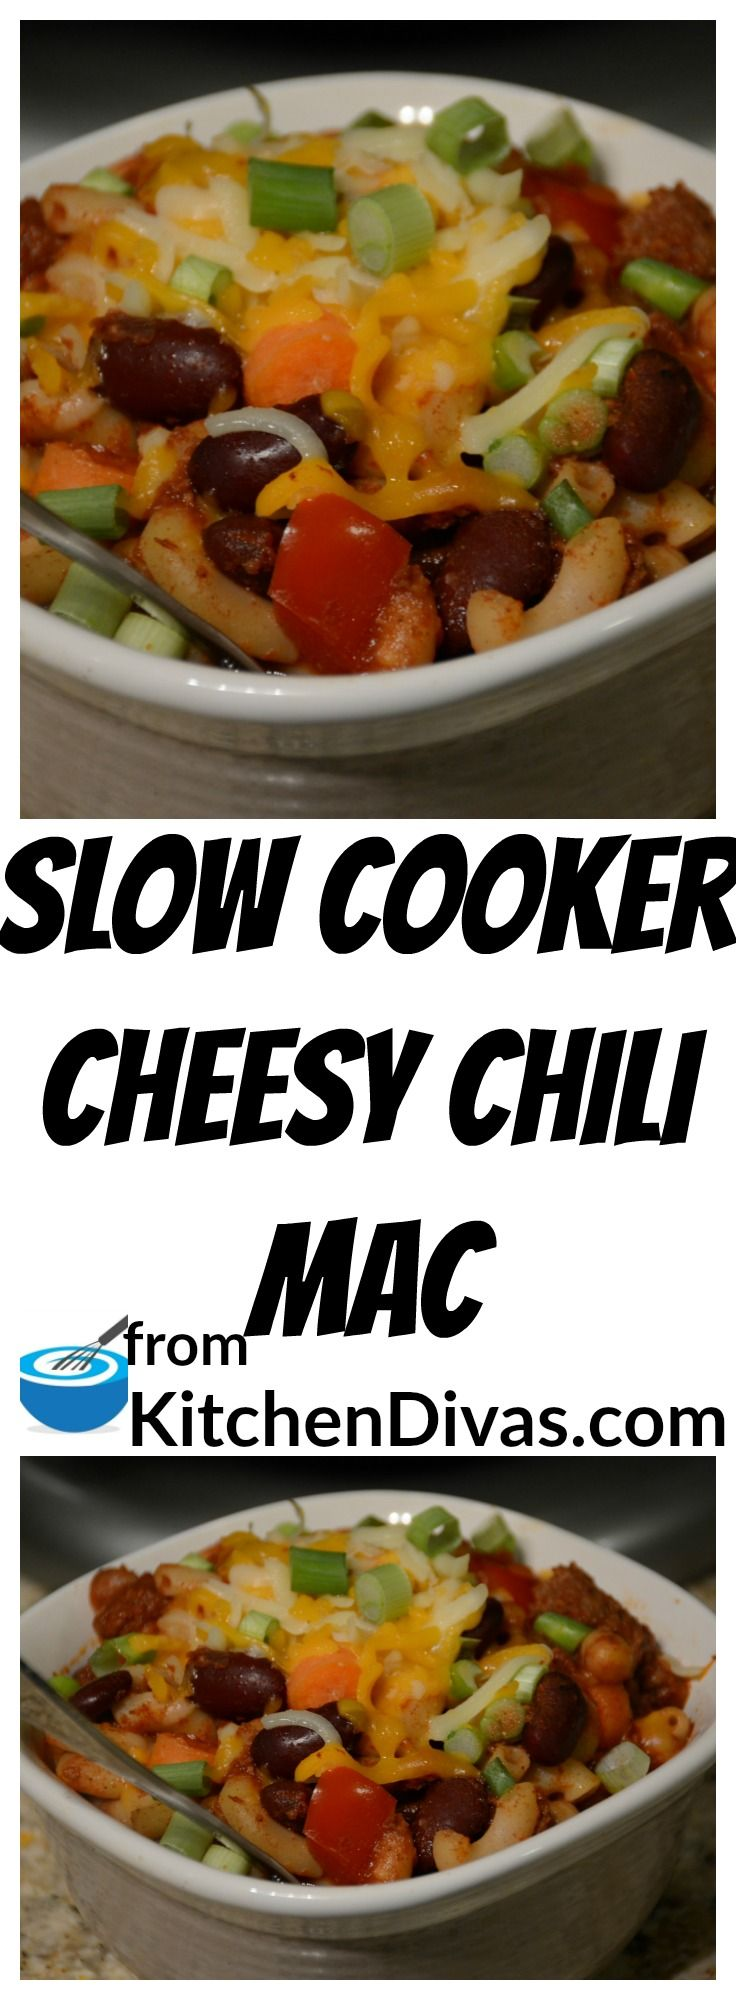 My grandmother used to put macaroni noodles in chili when we came home for lunch from grade school. She made the best lunches. I can't help but love this version of that dish now. Slow Cooker Cheesy Chili Mac totally reminds me of then! #chili #slowcooker #dinner #food #foodideas